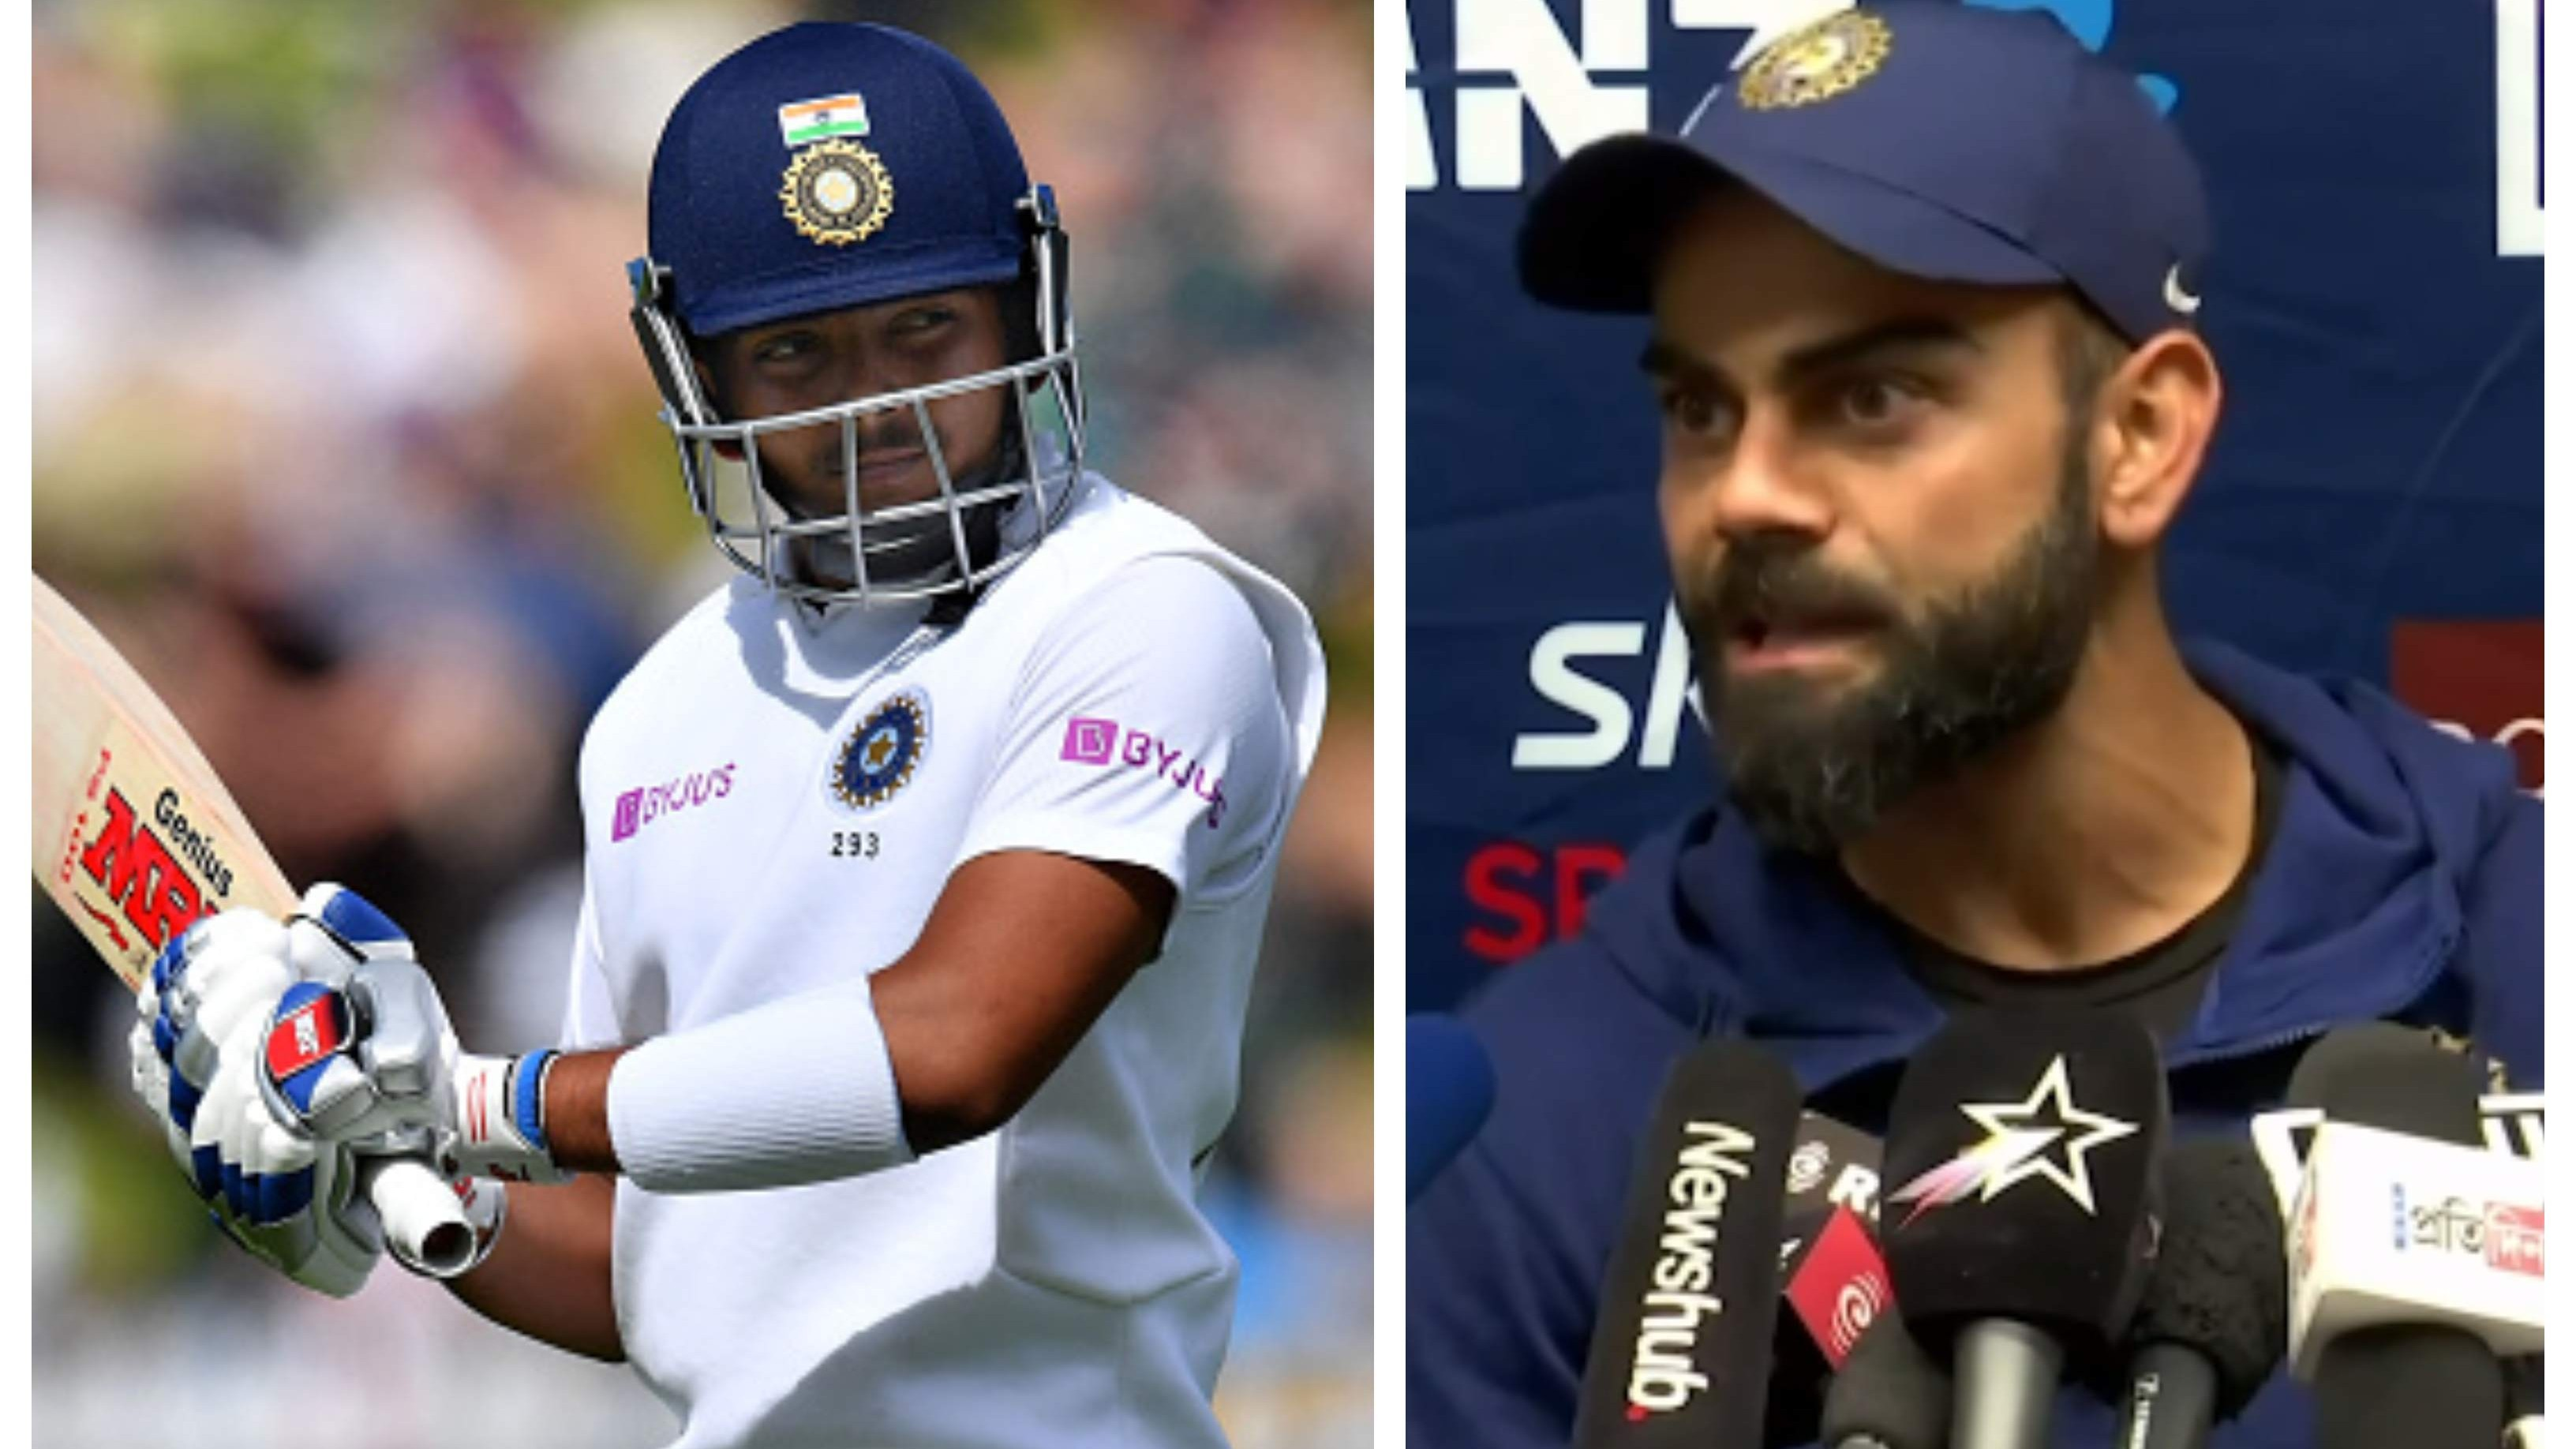 NZ v IND 2020: Virat Kohli plays down the talks of glitches in Prithvi Shaw's technique